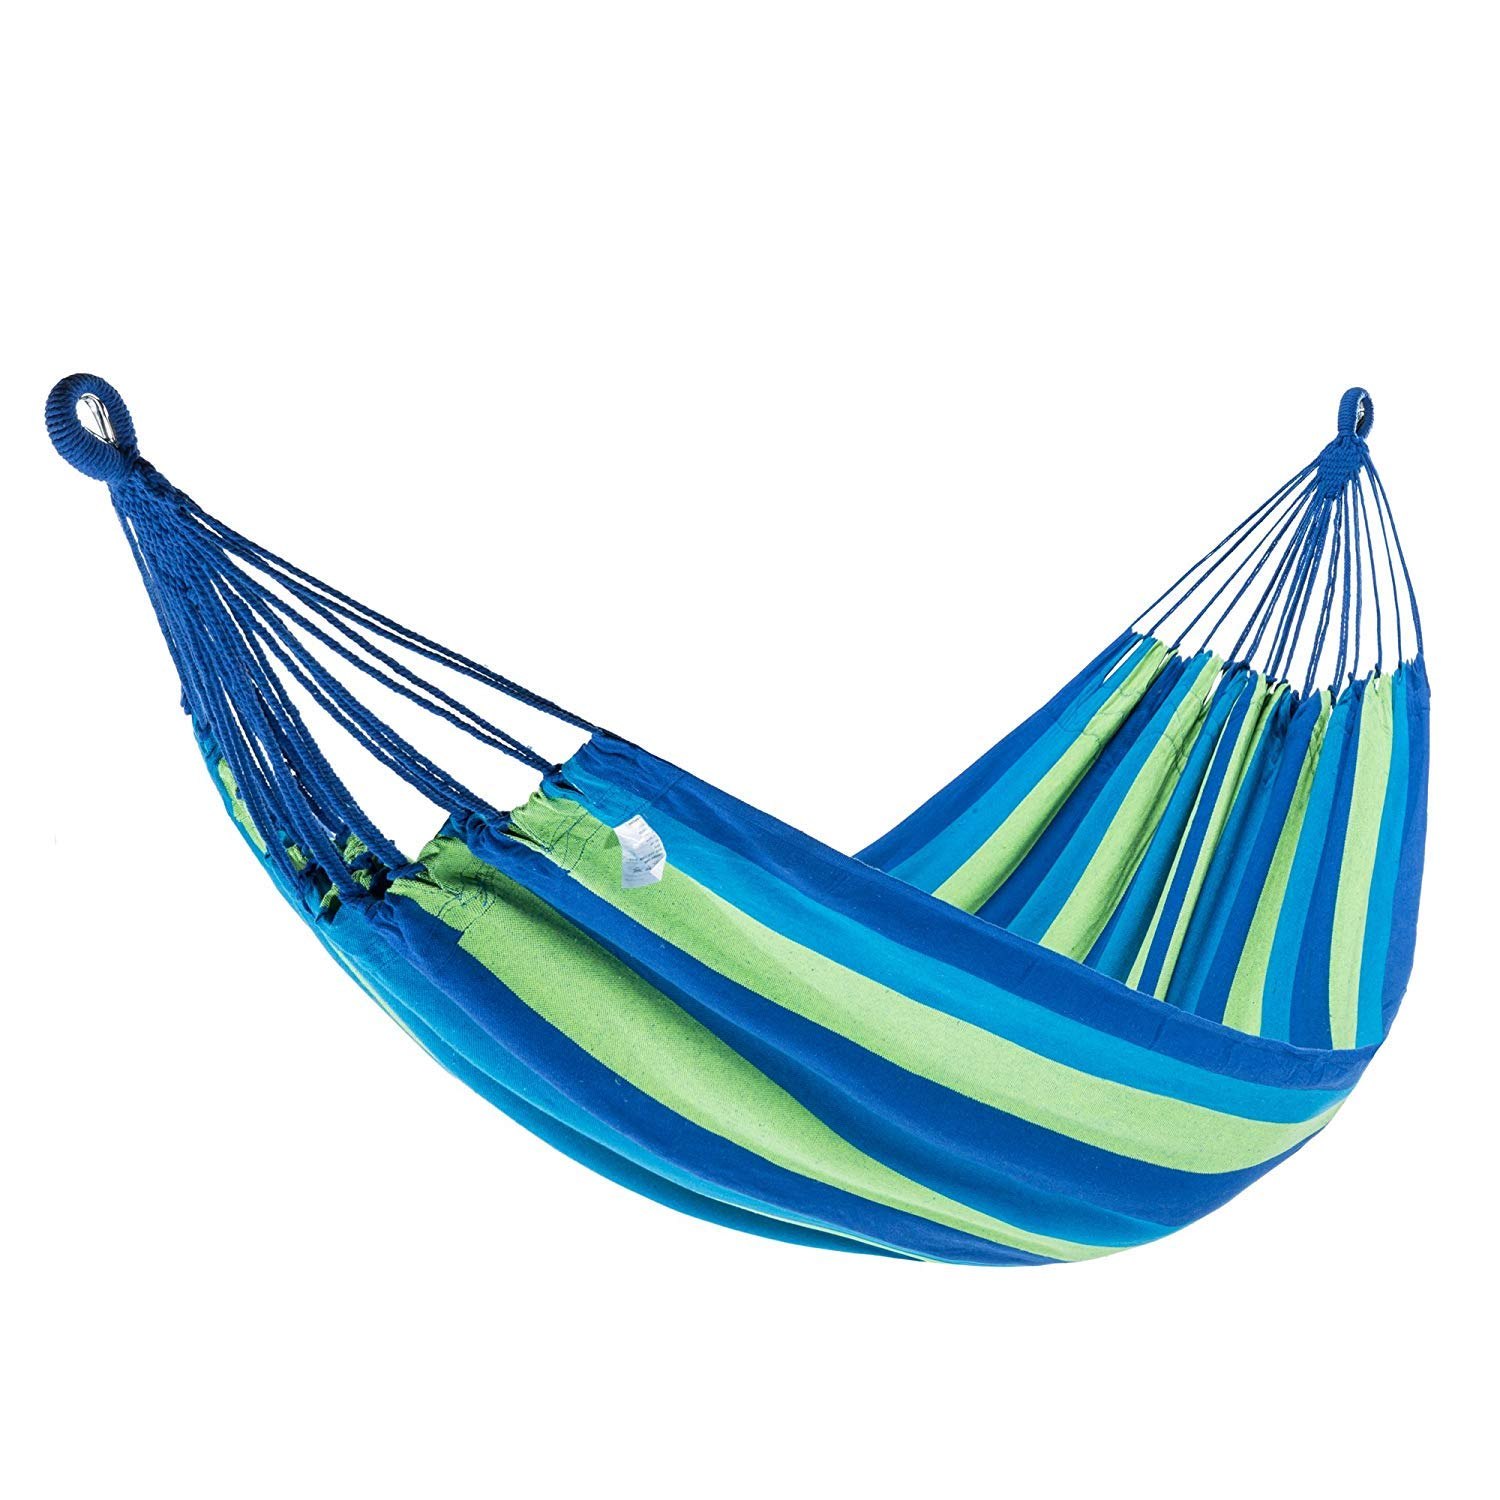 KingCamp Hammock Double and Single 1-2 Person Cotton Canvas Portable Large Parachute Swing Bed Tree Hanging Colorful Stripes for Outdoor Camping Patio Yard Beach